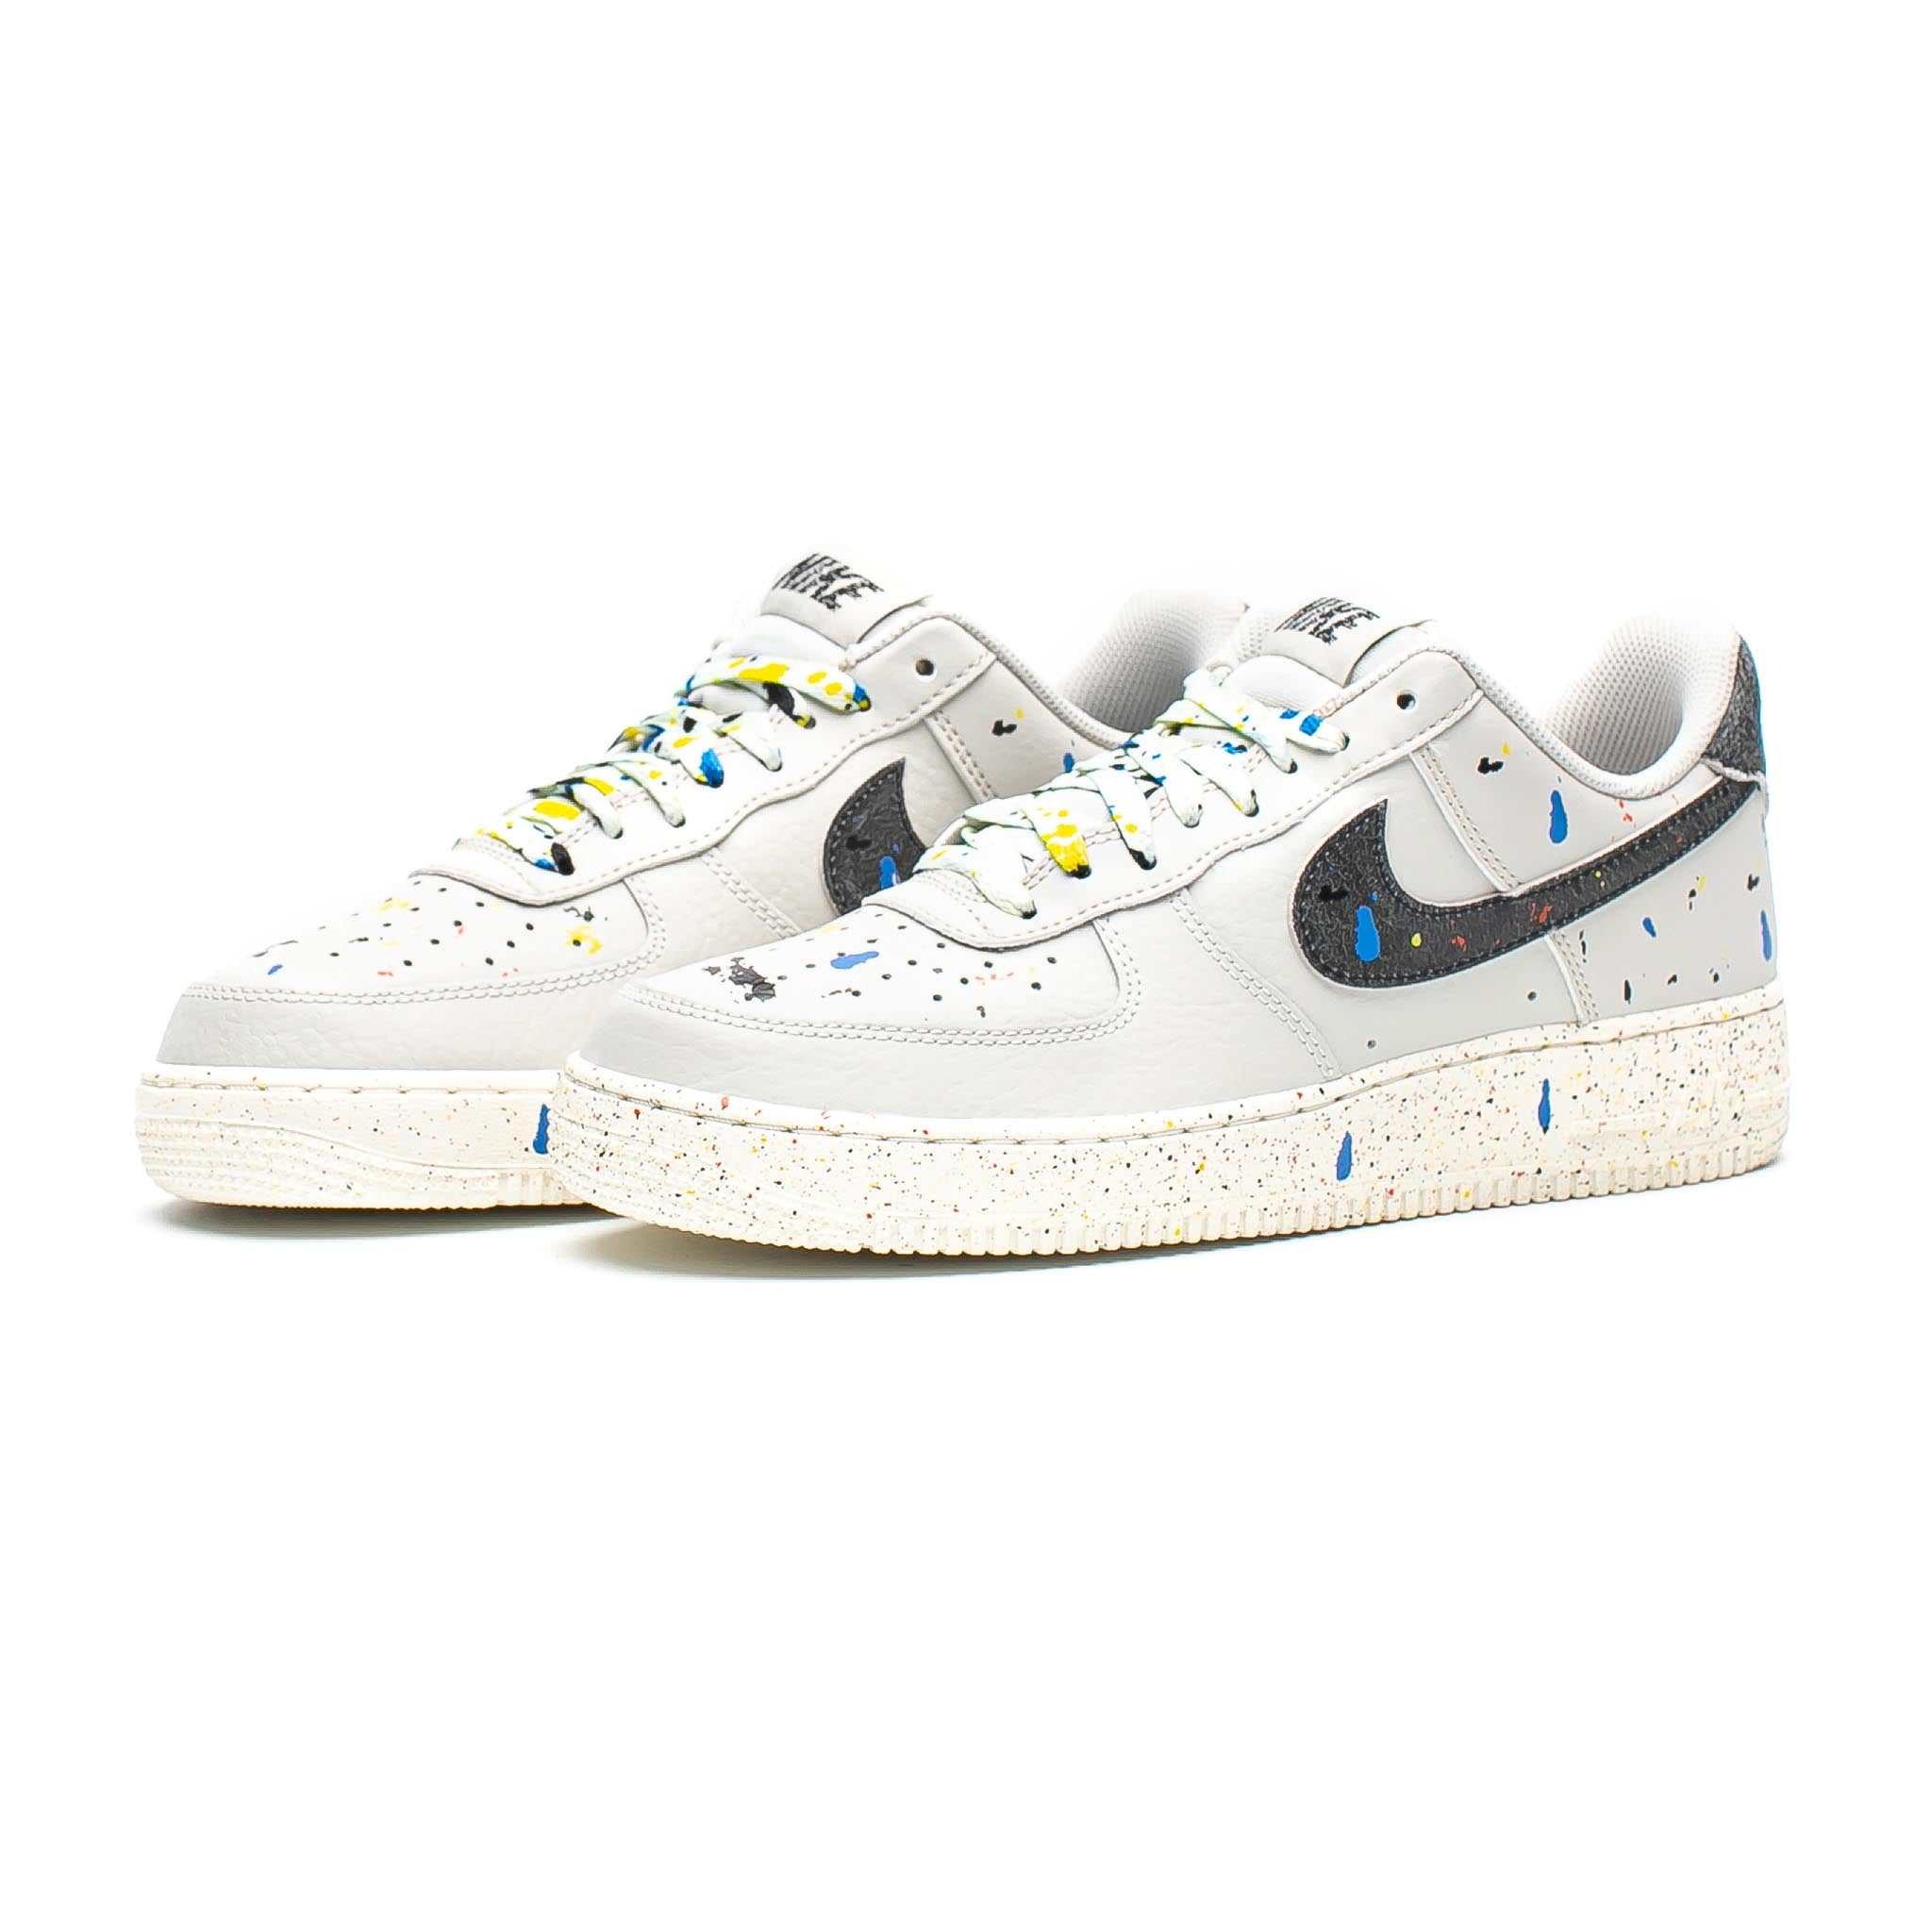 Nike Air Force 1 '07 LV8 'Paint Splatter' Light Bone